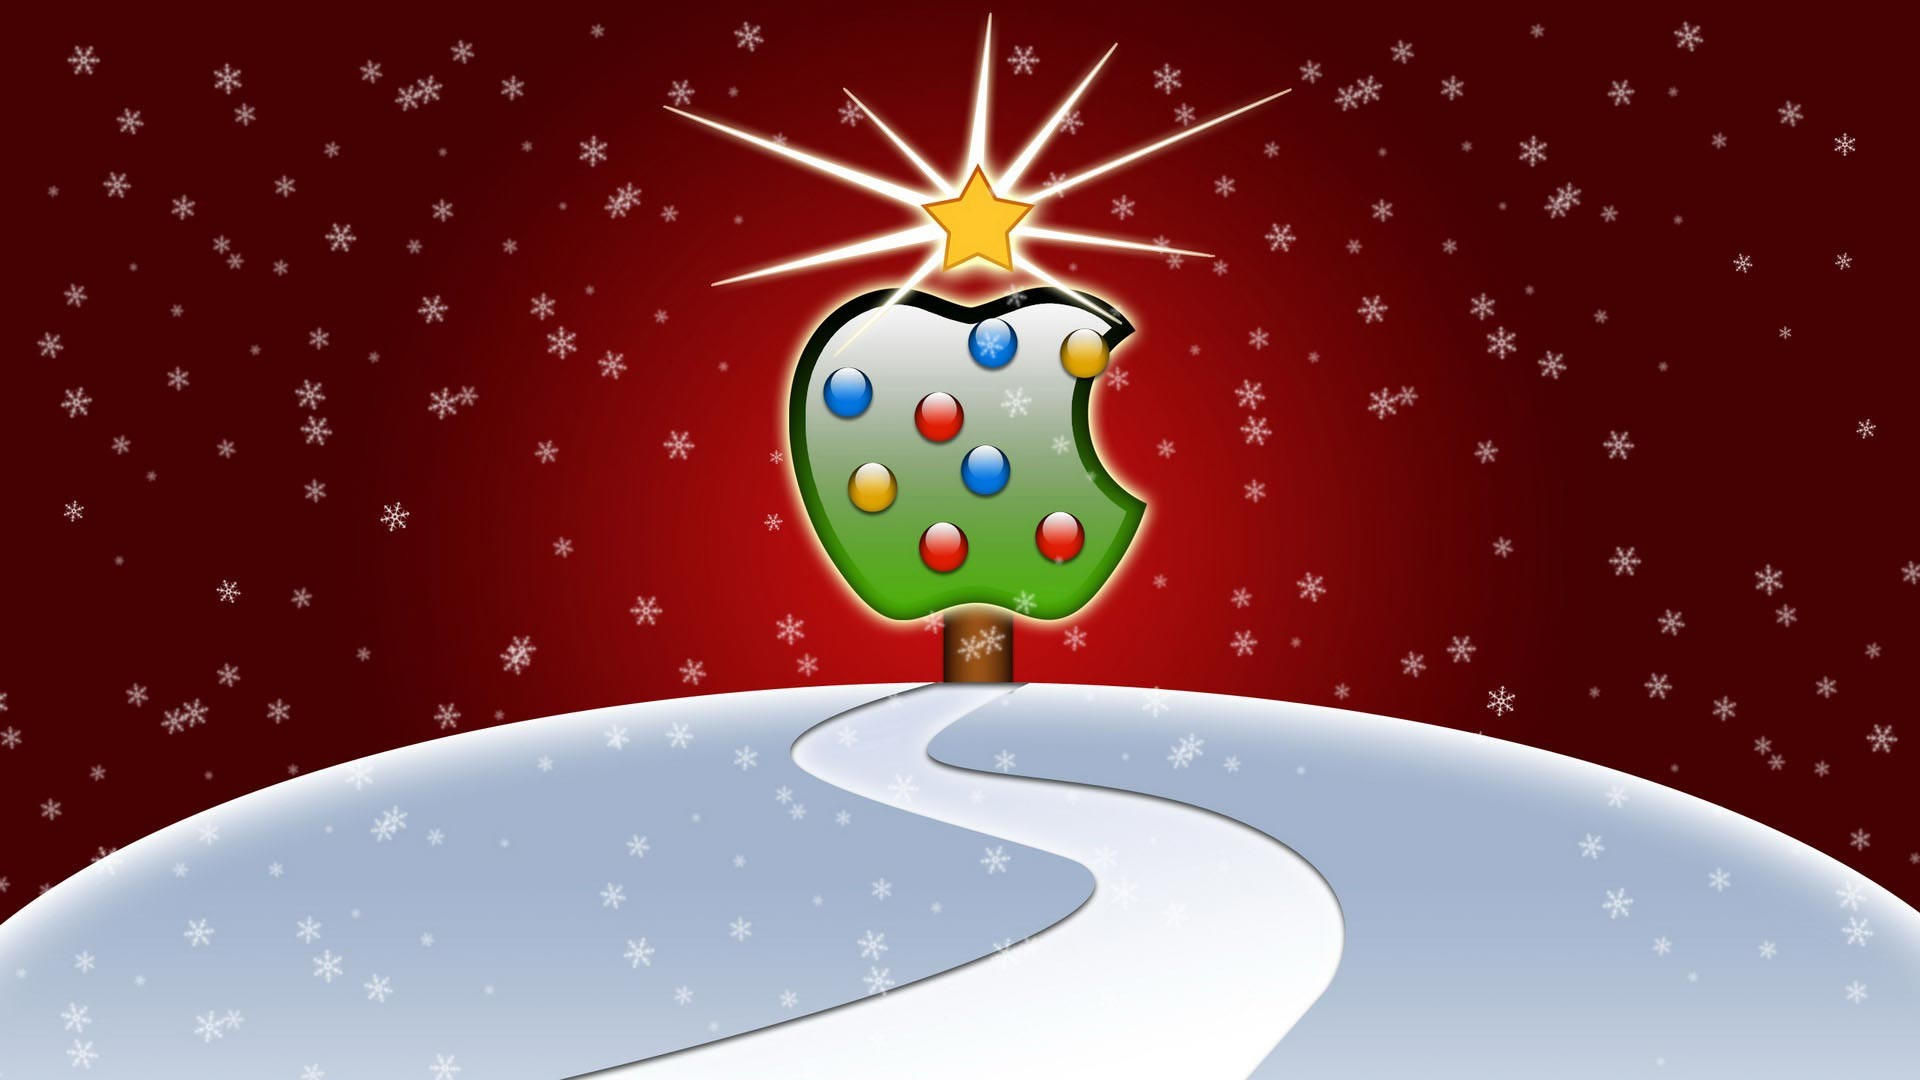 animated background holiday desktop mac christmas apple wallpapers 1920x1080